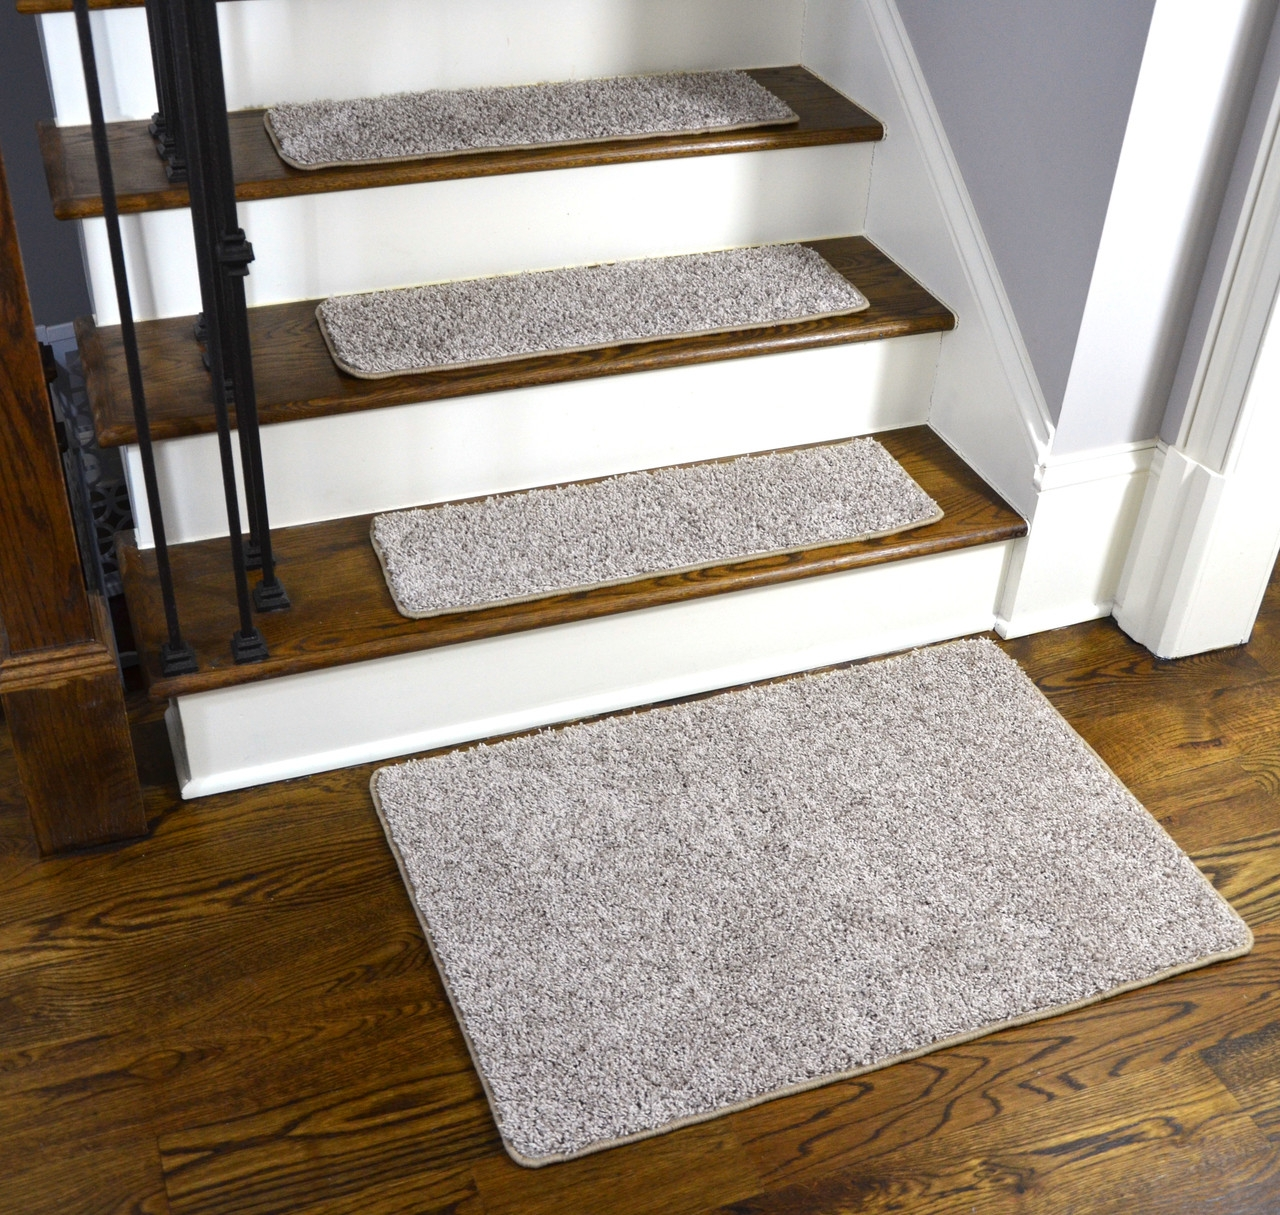 Dean Washable Non Slip Carpet Stair Treads Macadamia Beige Set | Carpet Stairs Wooden Floor Landing | Oak | Red Striped | Center House | Wall To Wall Carpet | Bedroom